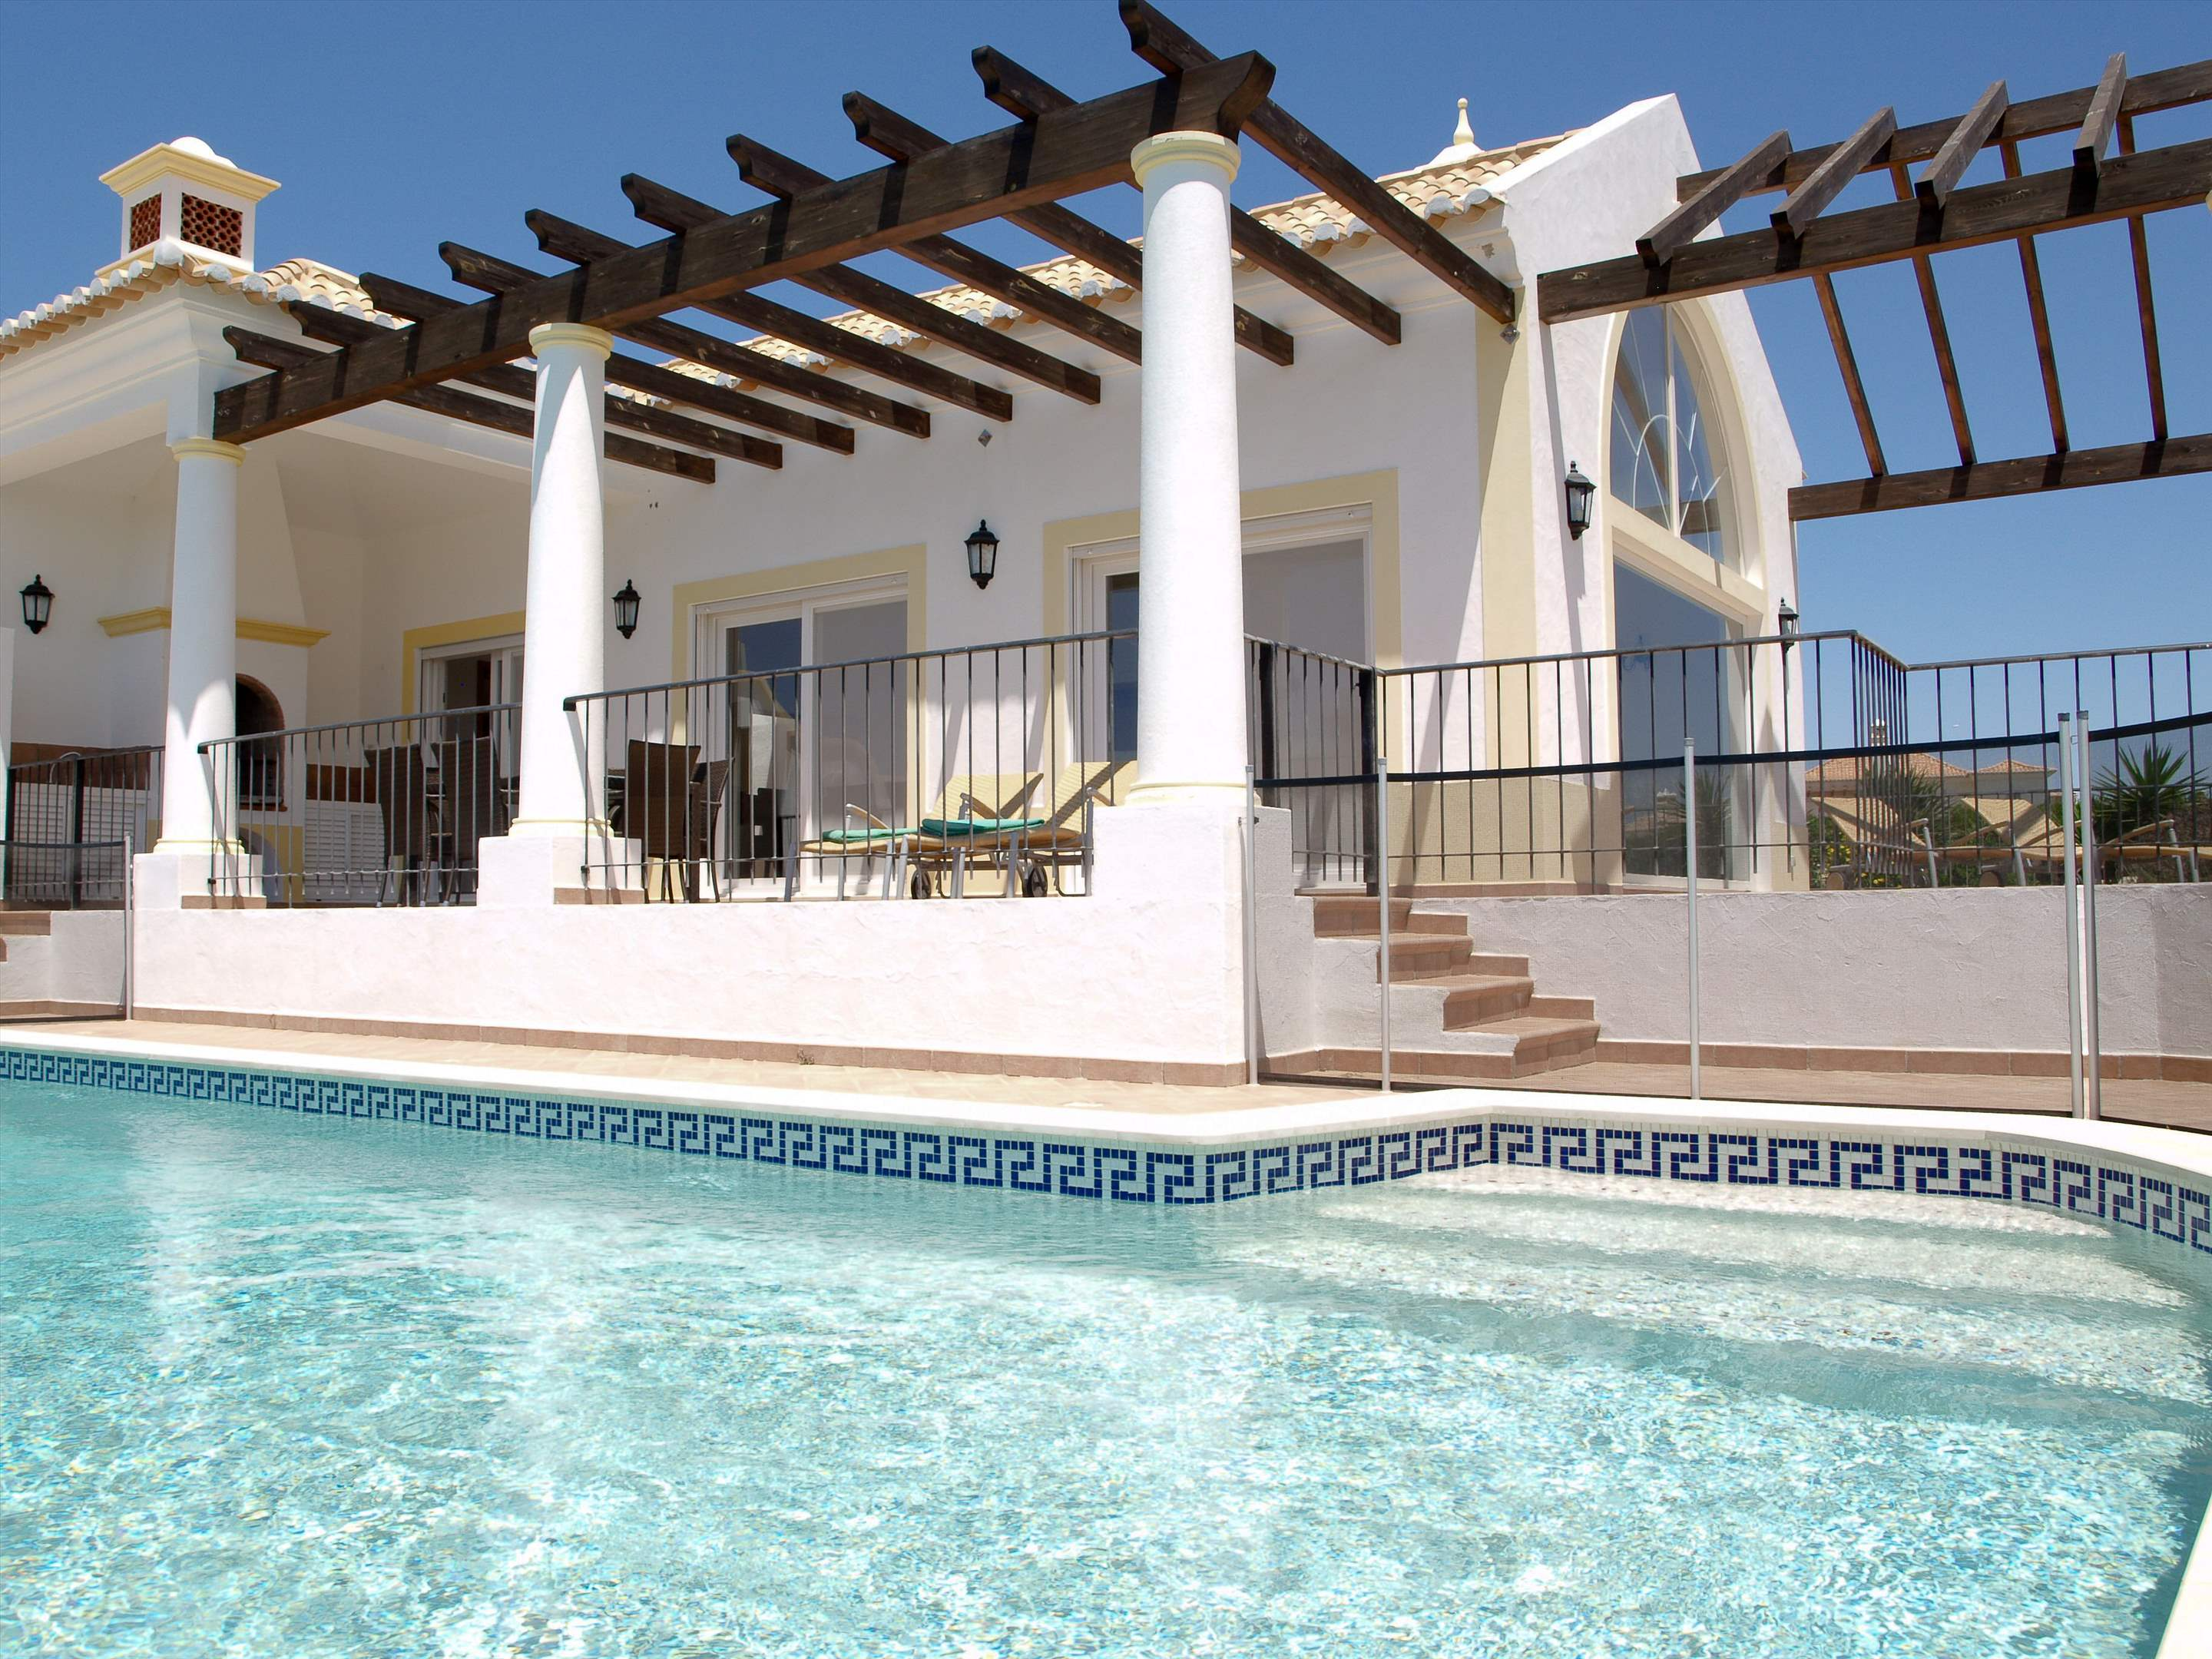 Martinhal Luxury Villa No.8, Three Bedroom Villa, 3 bedroom villa in Martinhal Sagres, Algarve Photo #1